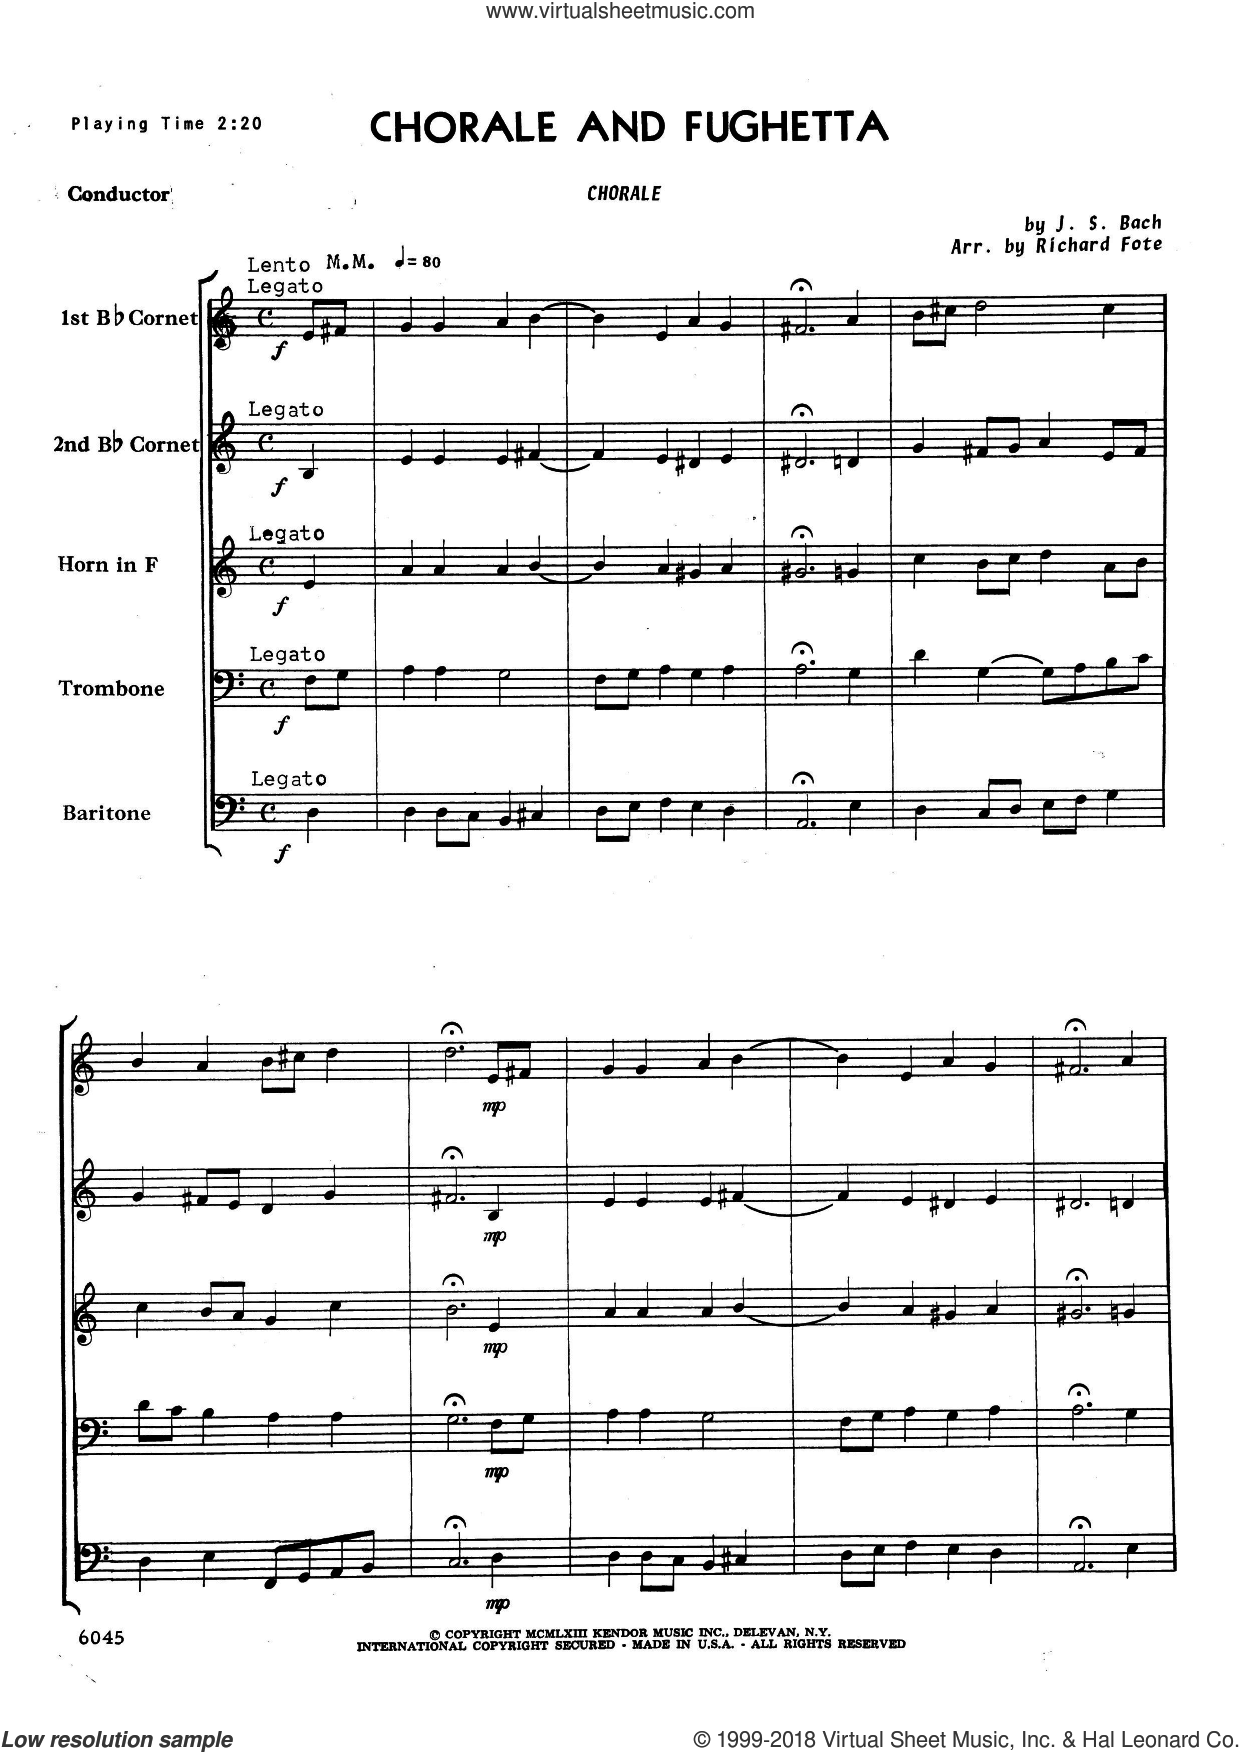 Chorale And Fughetta (COMPLETE) sheet music for brass quintet by Richard Fote and Johann Sebastian Bach, intermediate skill level